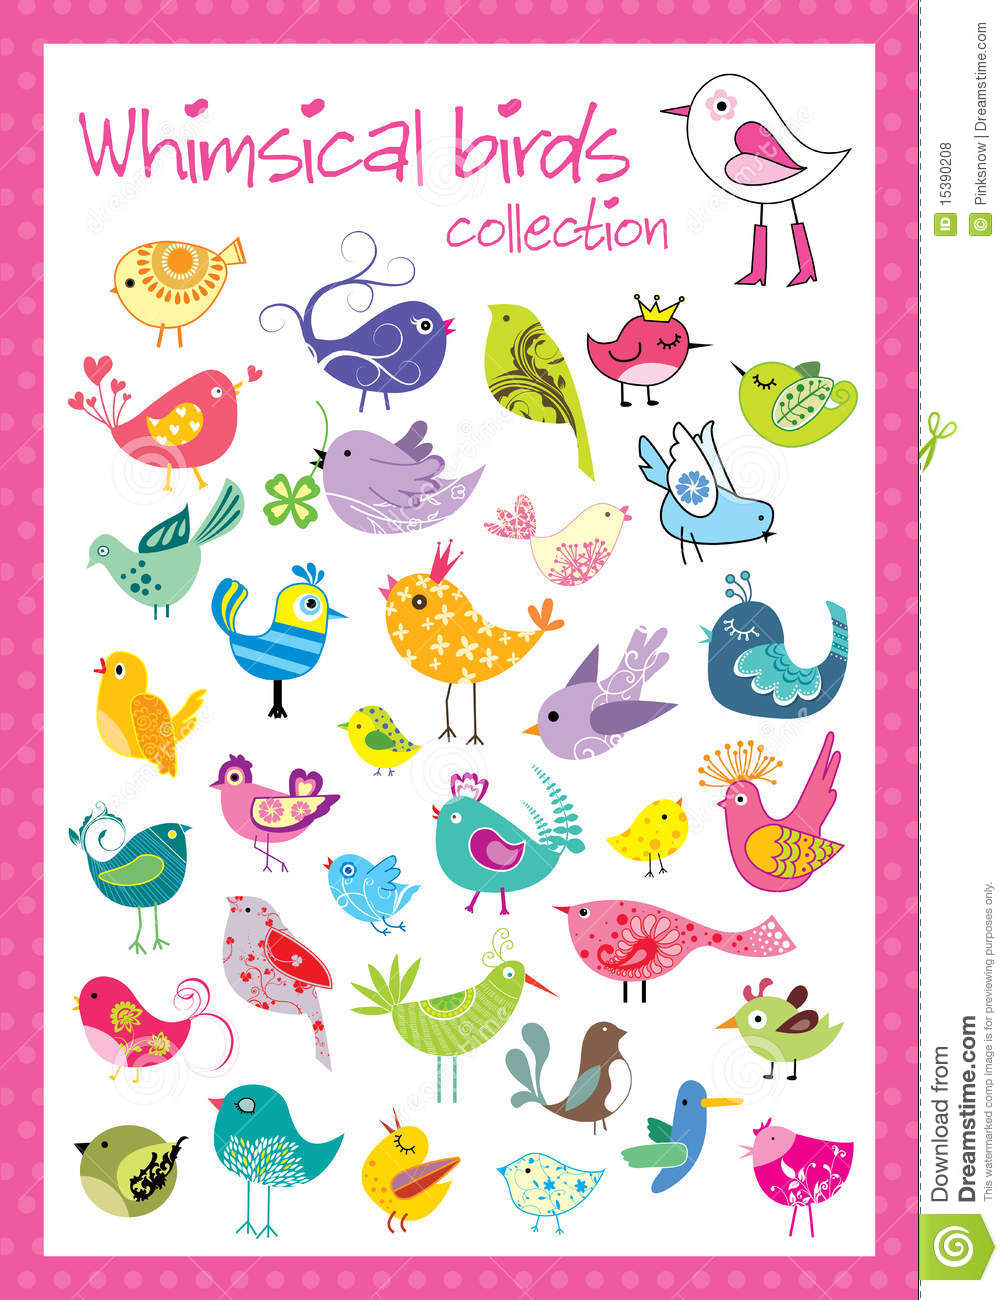 Whimsical birds collection stock vector. Illustration of fowl.